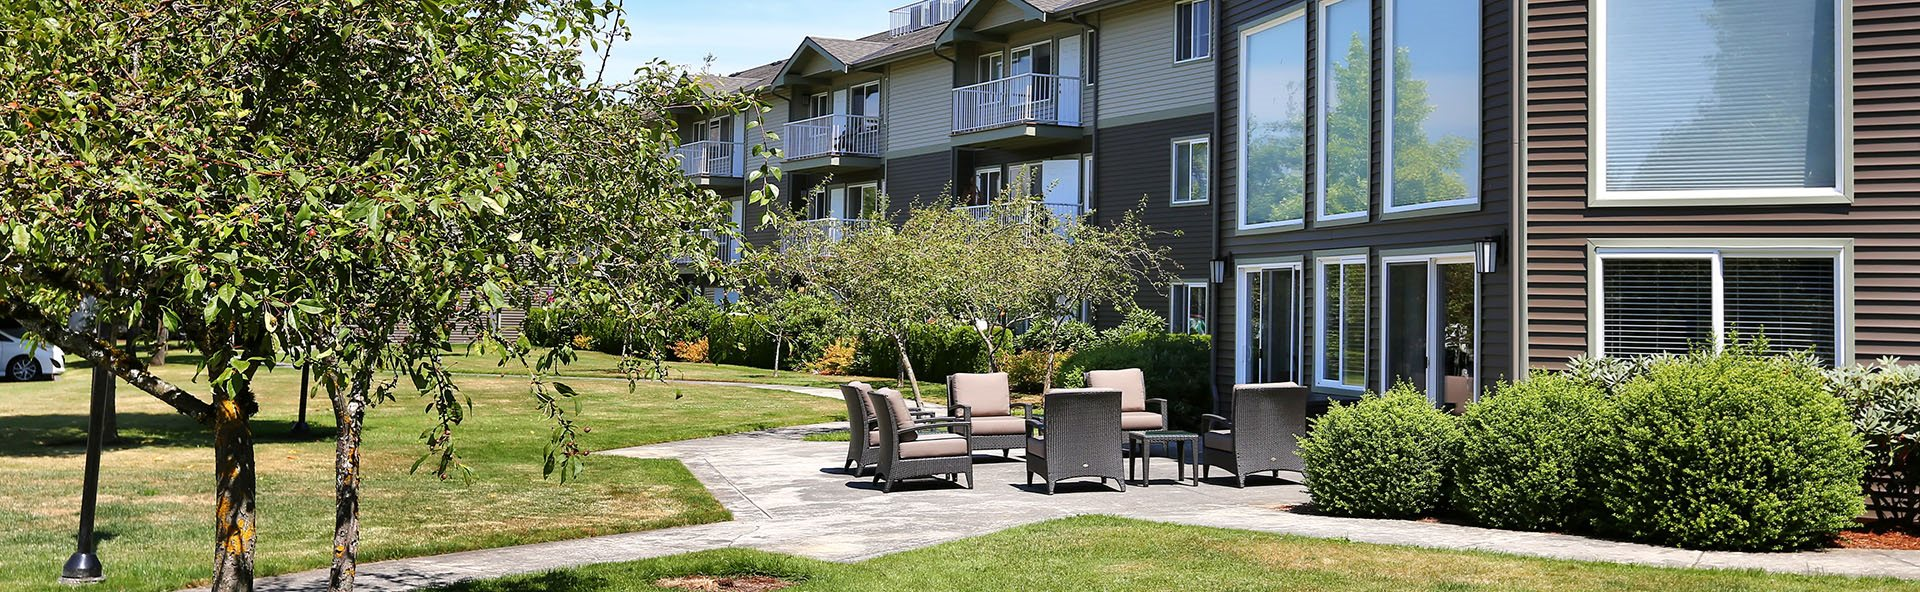 Outdoor Lounge | The Vintage Bellingham Senior Apartments in Bellingham, WA 98226